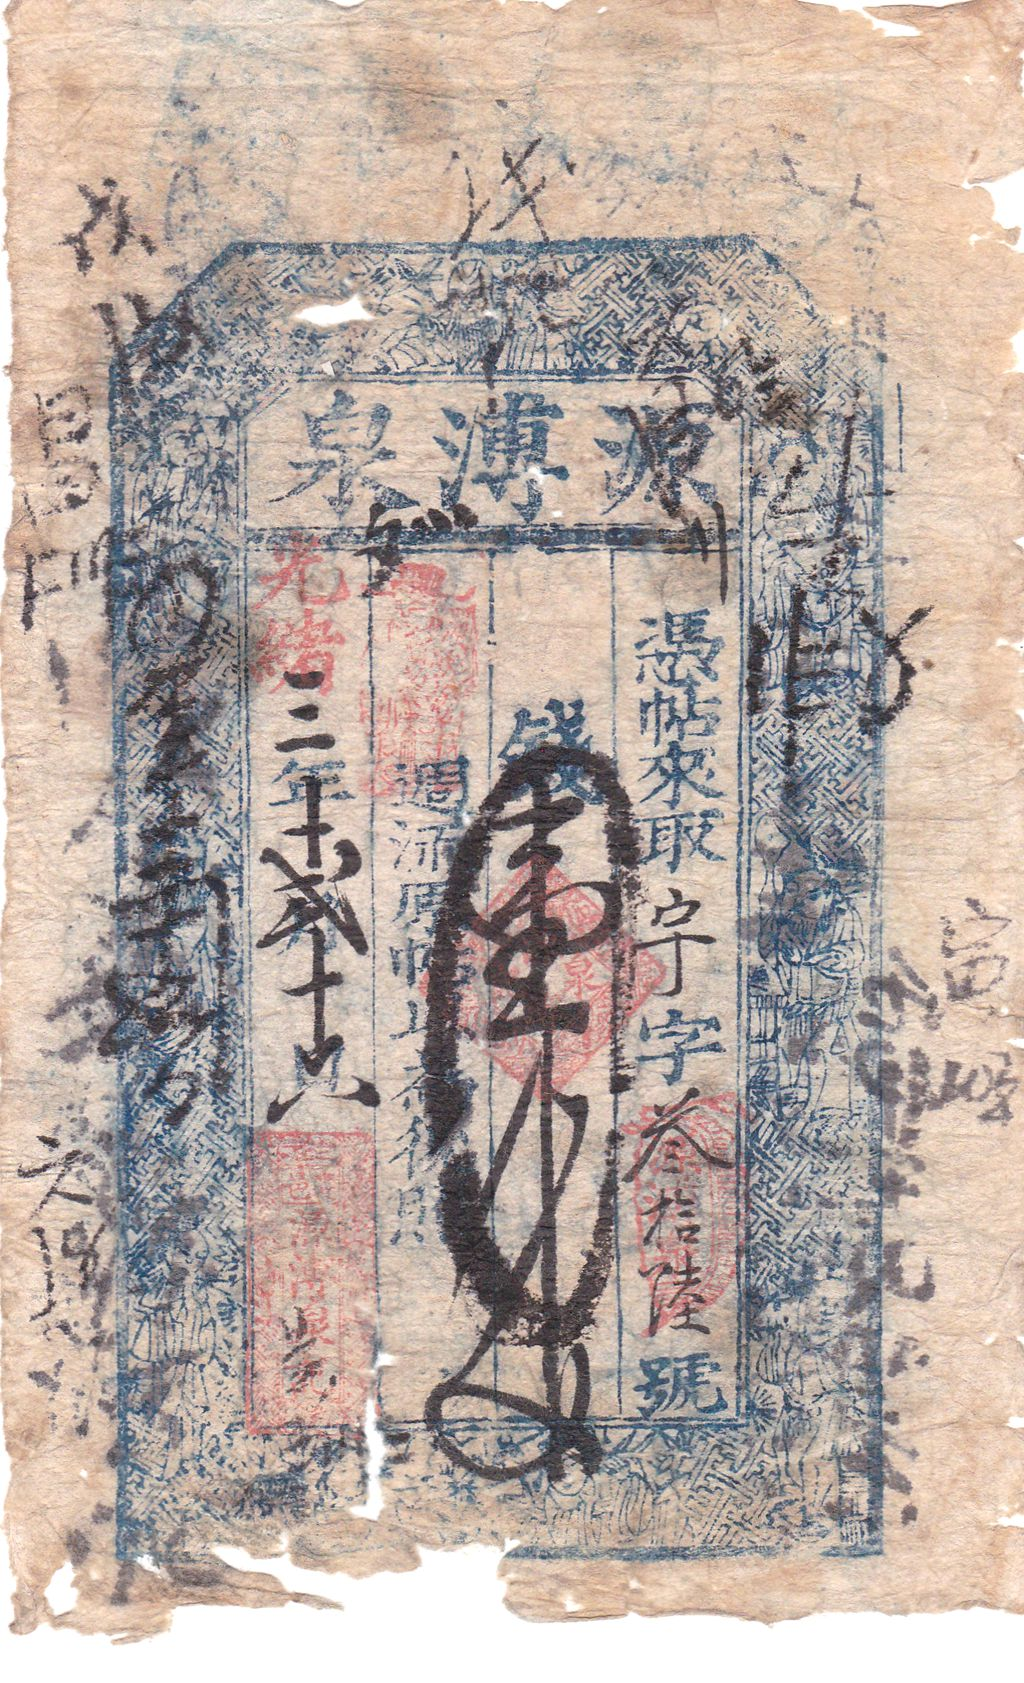 N6050, China Local Banknote (Native Bank Order), Ding County 1000 Cash, 1877